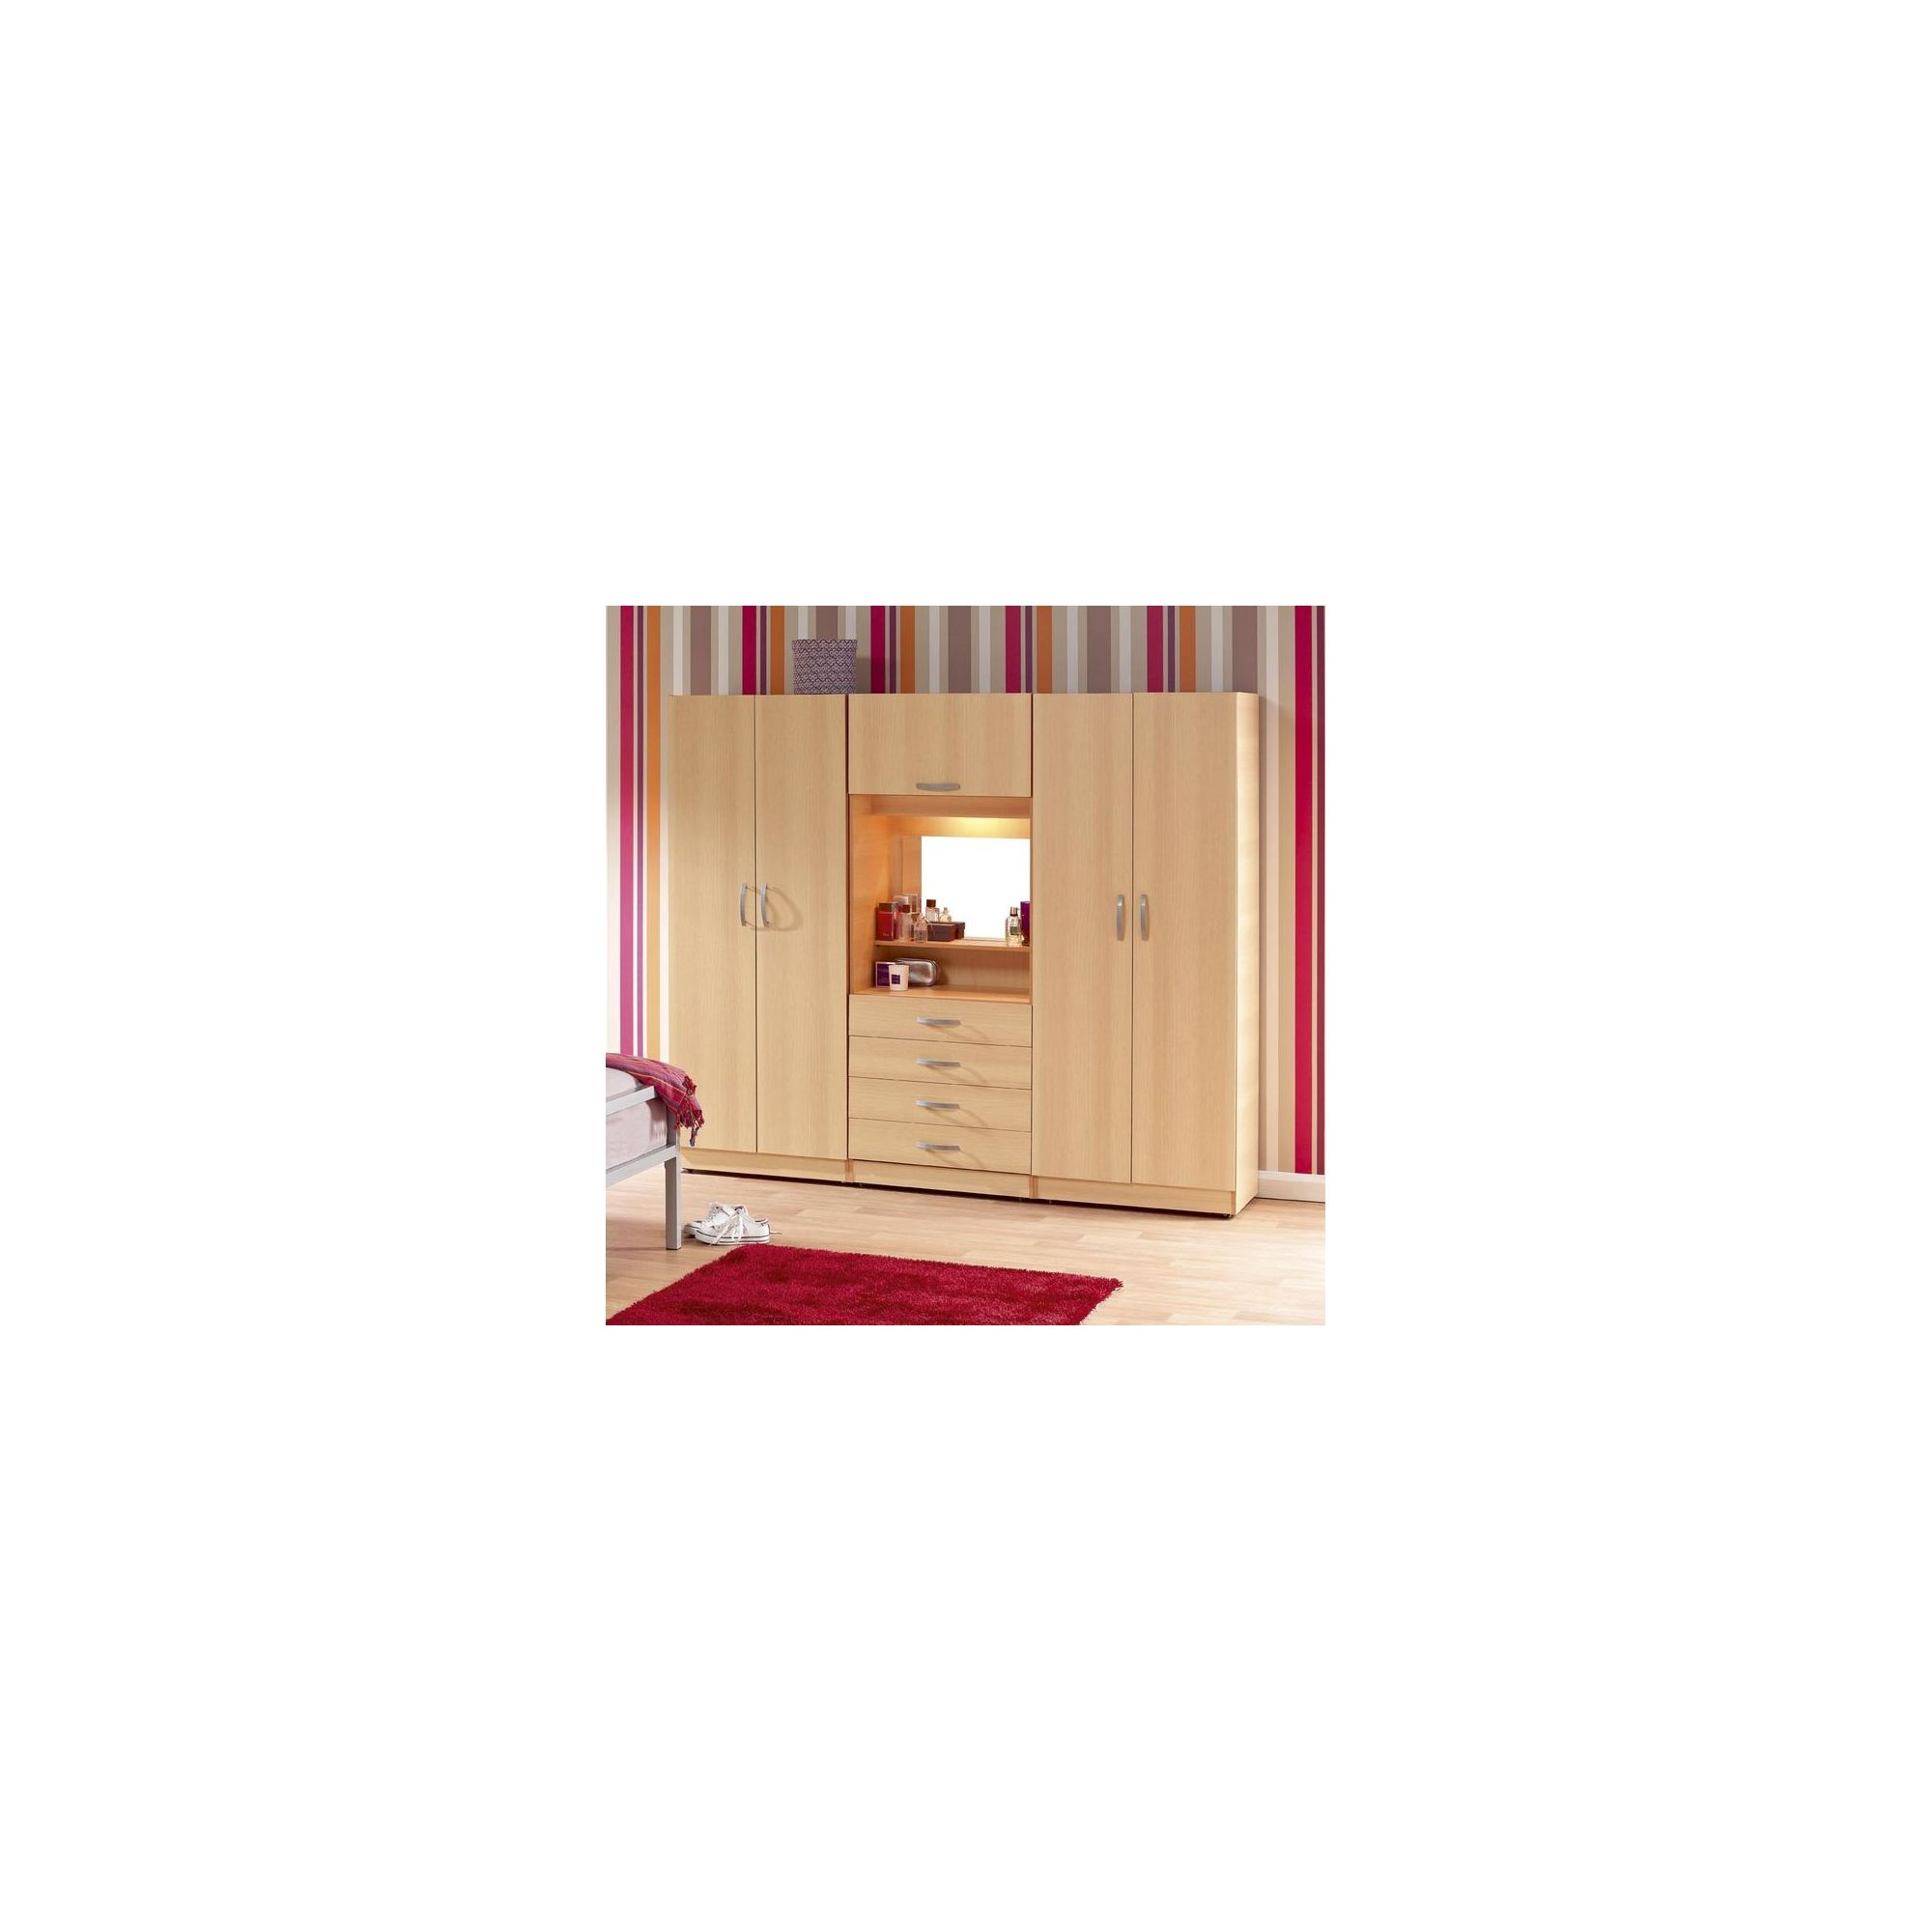 Ideal Furniture Budapest 4 door Wardrobe with drawers - Walnut at Tesco Direct